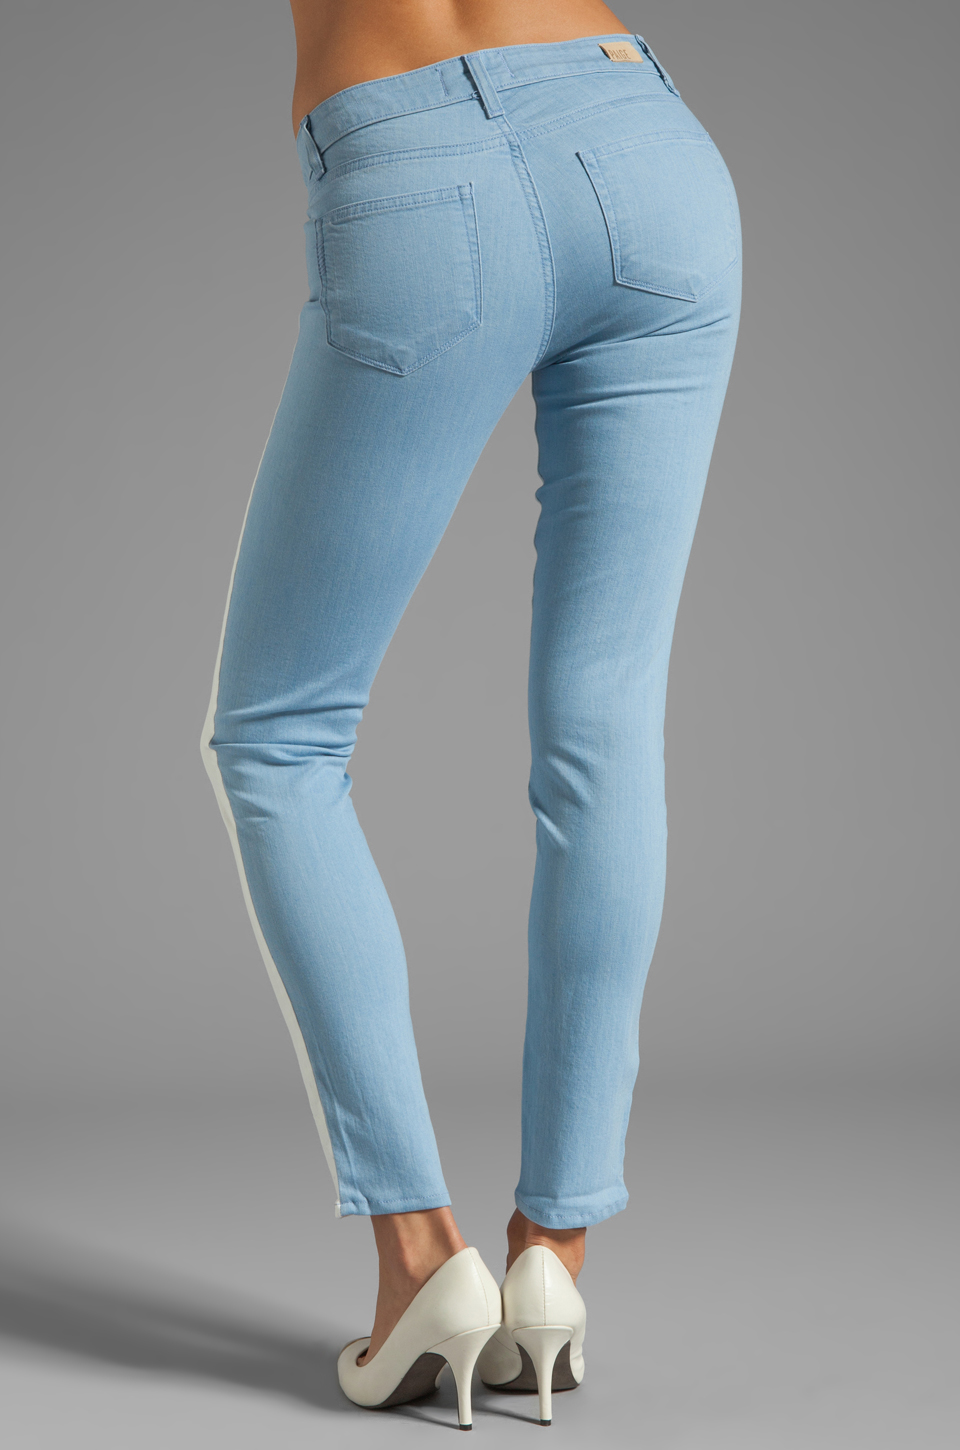 Paige Denim Emily Ultra Skinny in Cloud/White